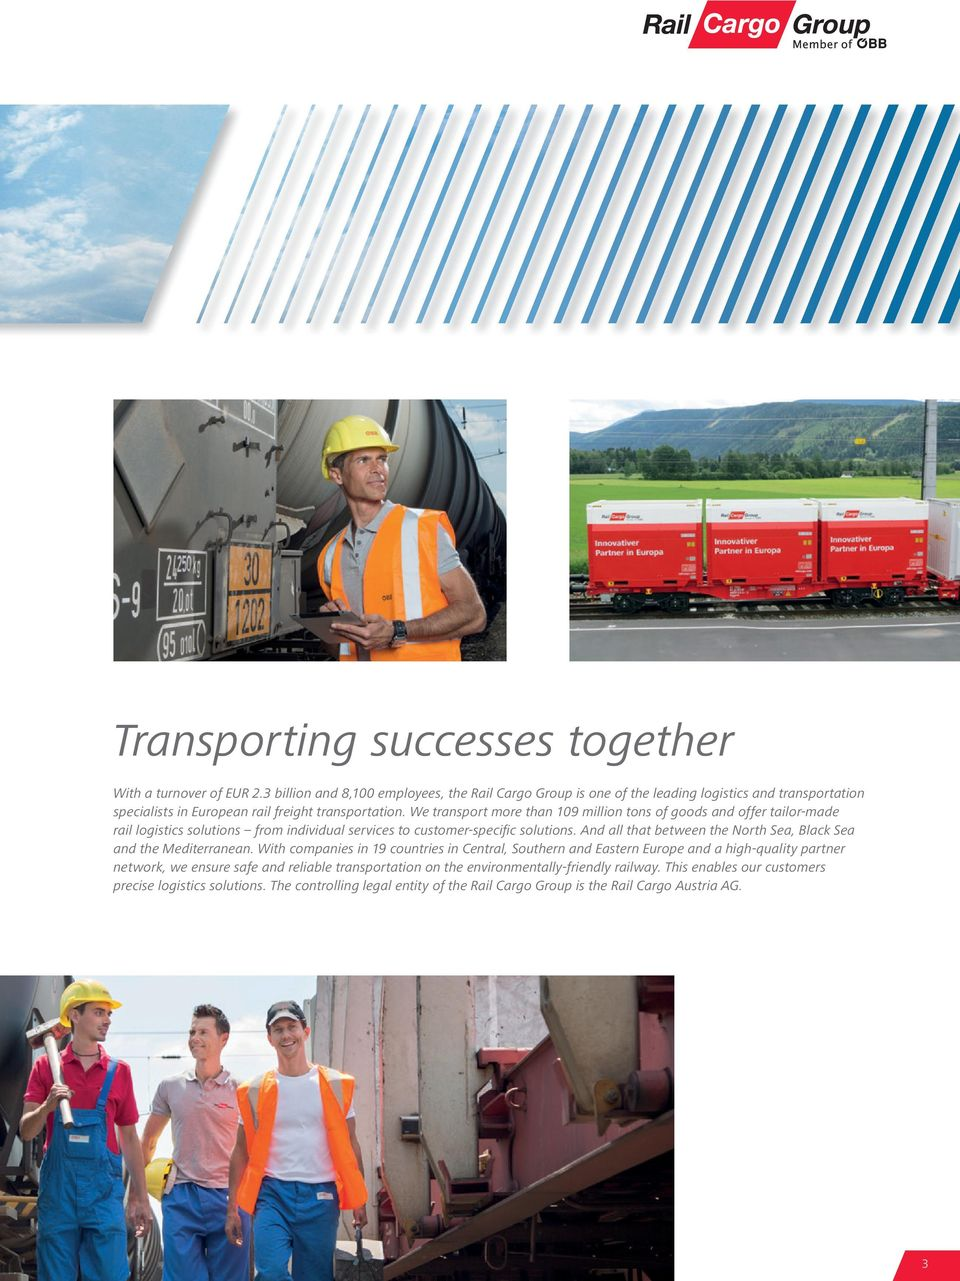 We transport more than 109 million tons of goods and offer tailor-made rail logistics solutions from individual services to customer-specific solutions.